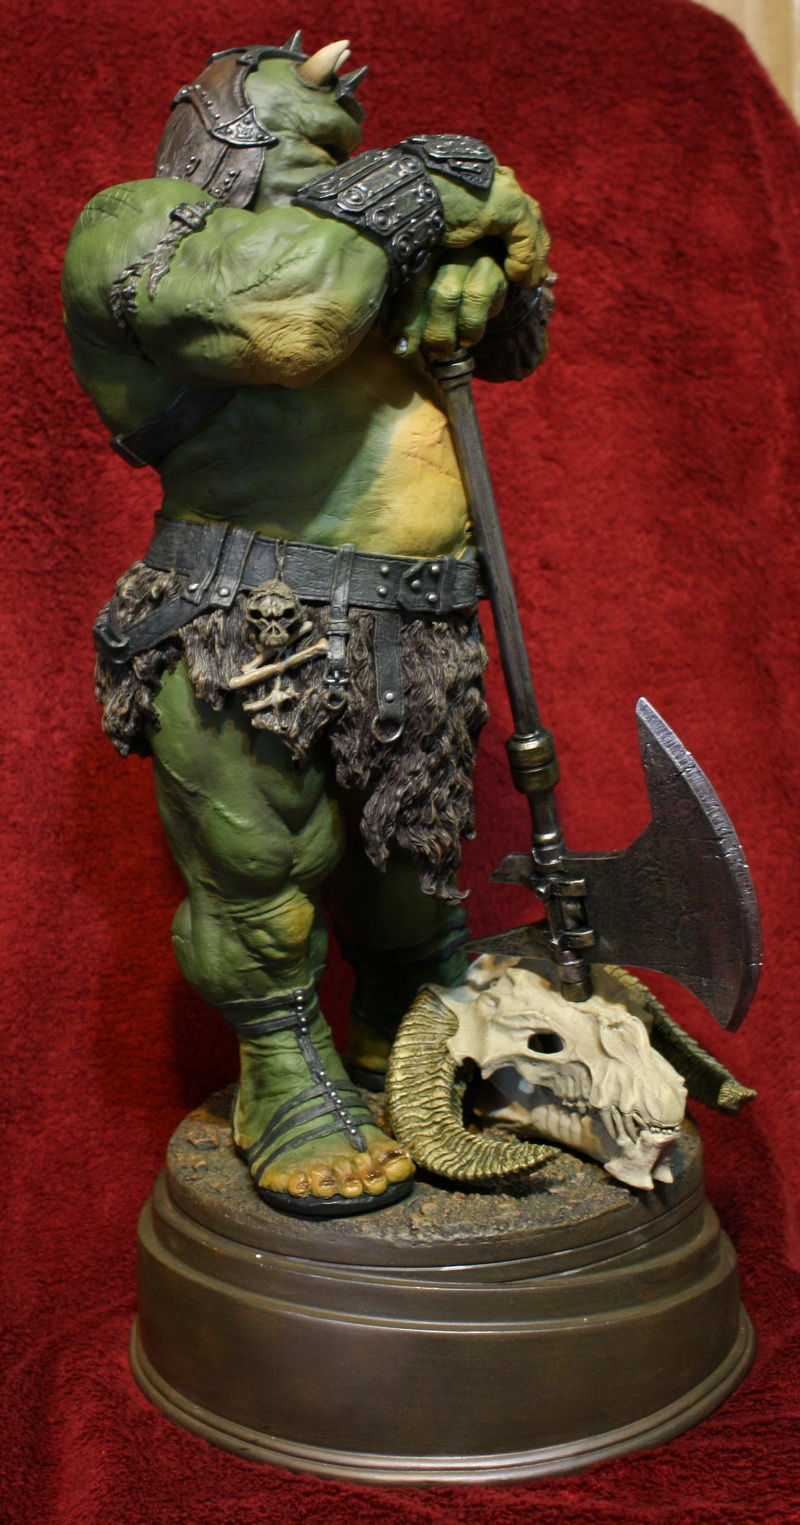 STAR WARS: GAMORREAN EXECUTIONER Mythos statue 19